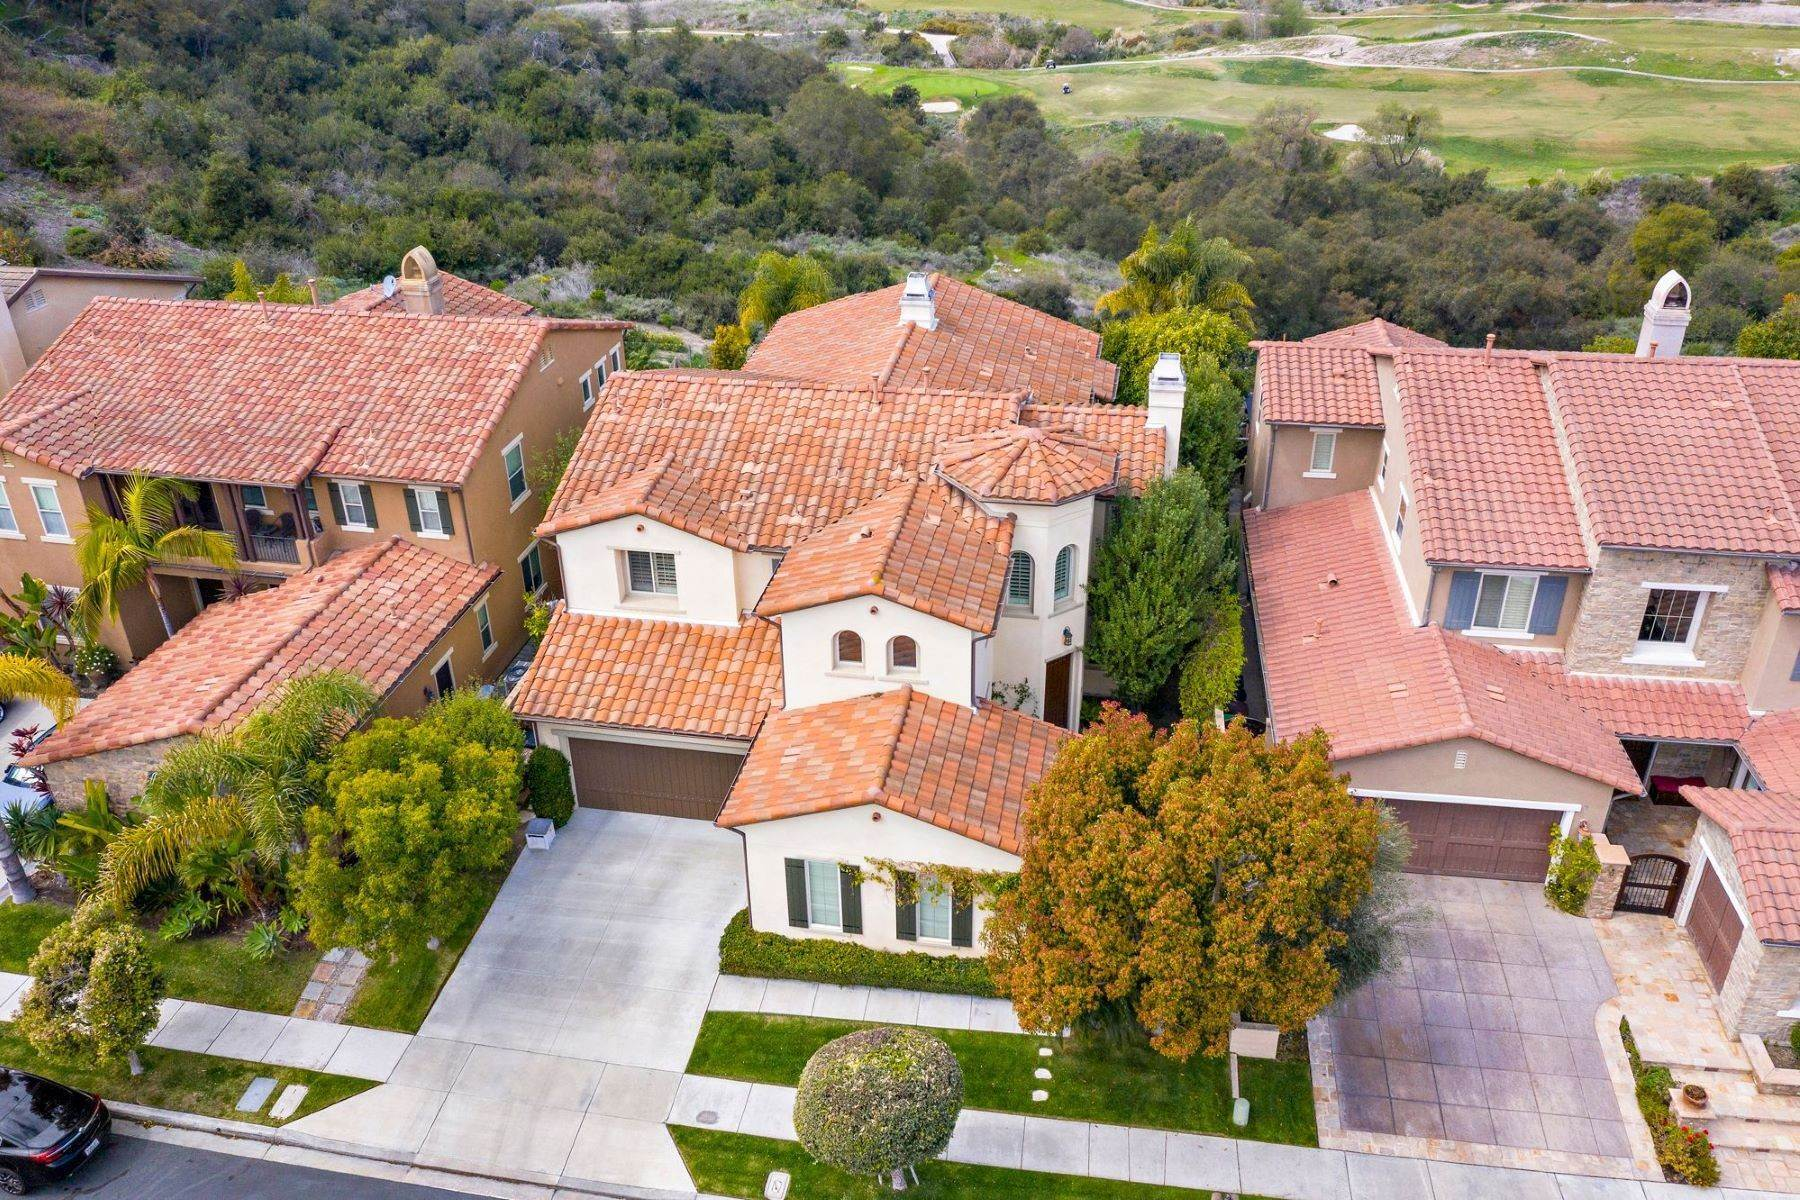 Single Family Homes for Sale at 53 Via Cartama, San Clemente, CA 92673 53 Via Cartama San Clemente, California 92673 United States